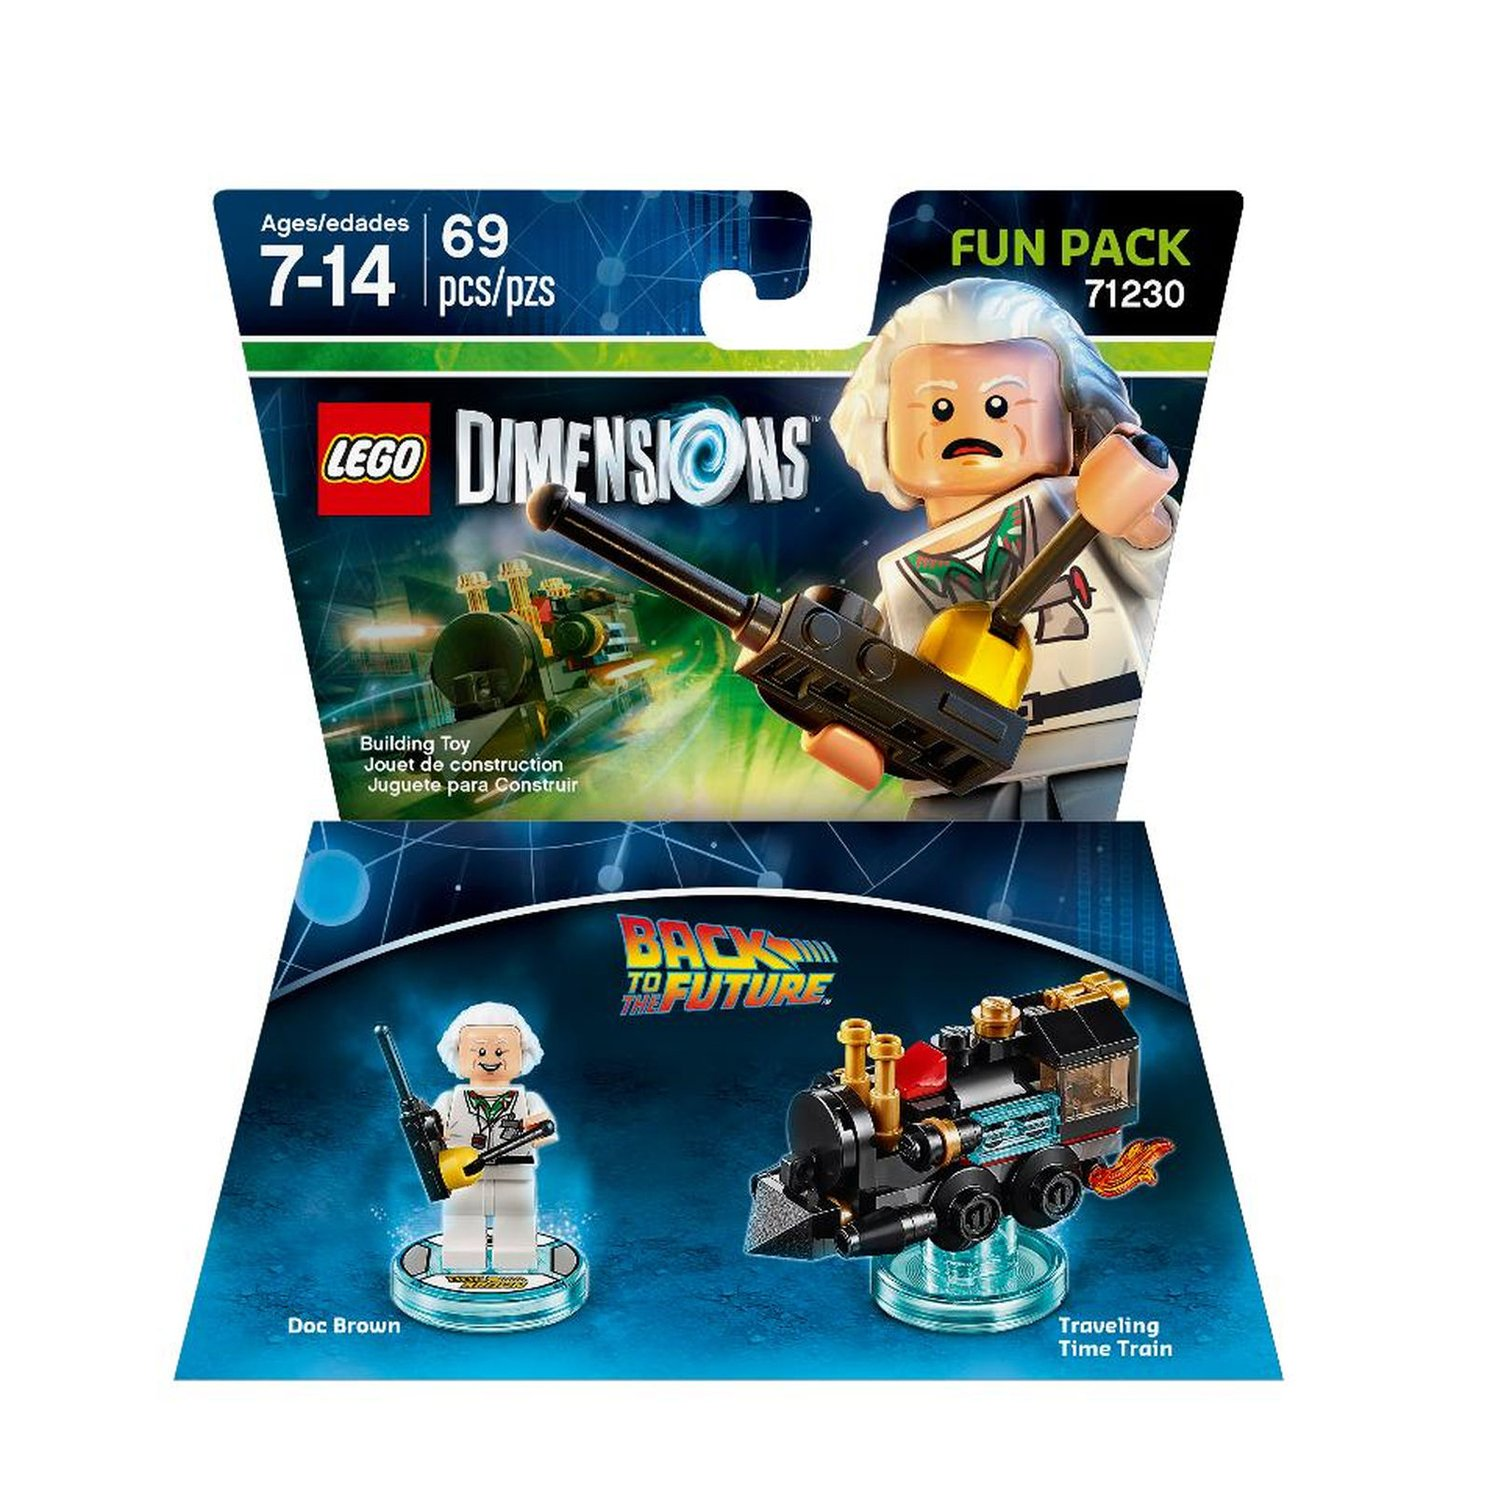 Adventure Games Games /& CD-Roms Back to the Future Doc Brown Fun Pack LEGO Dimensions V Ld Btf Fun Pk W//Doc Brown Warner Bros Games 1000561497 Action